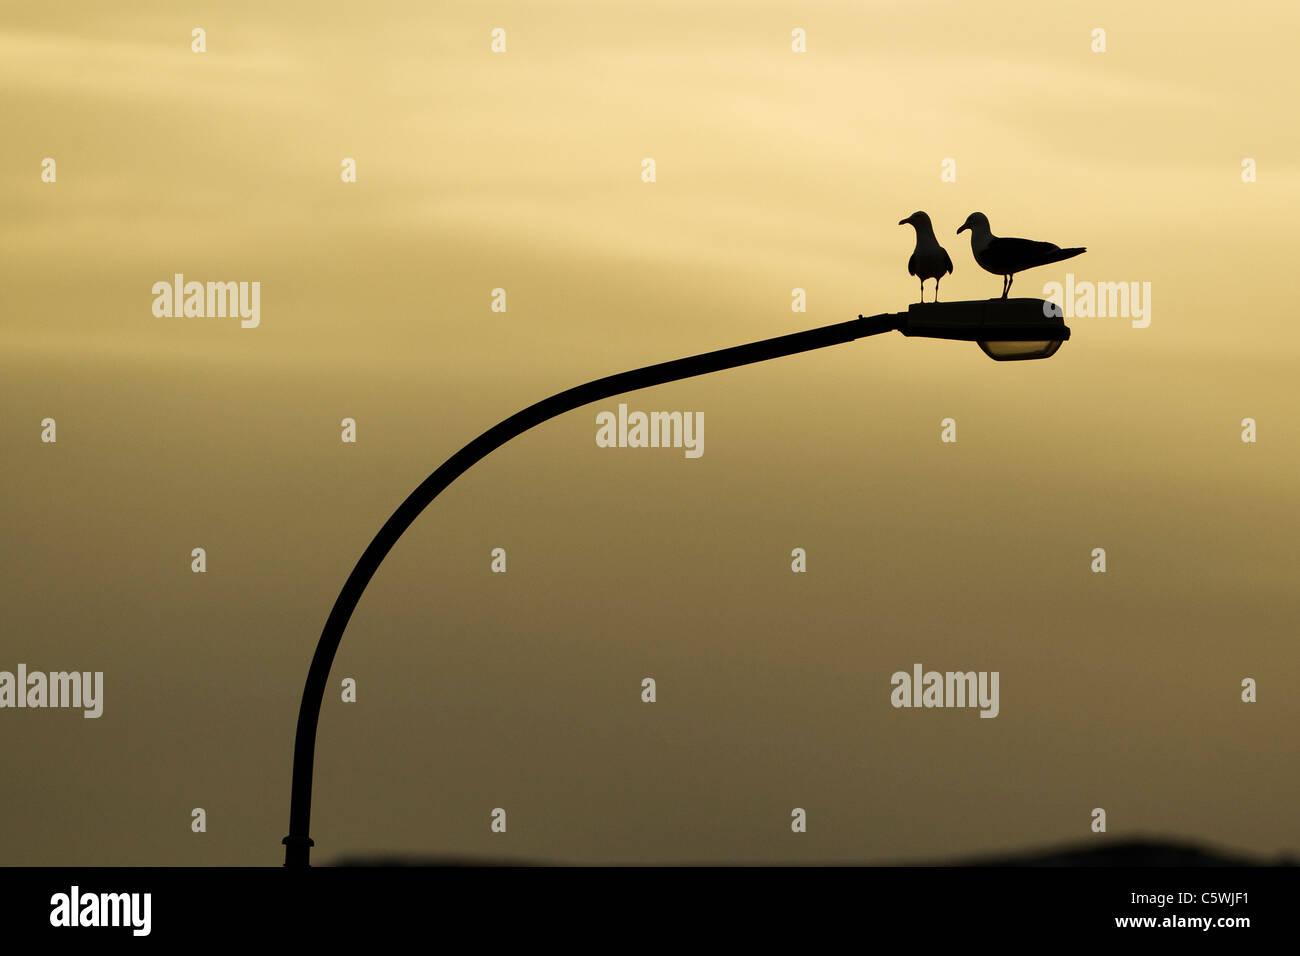 Lesser Black-backed Gull (Larus fuscus). Pair perched on street light at sunrise, Iceland. - Stock Image